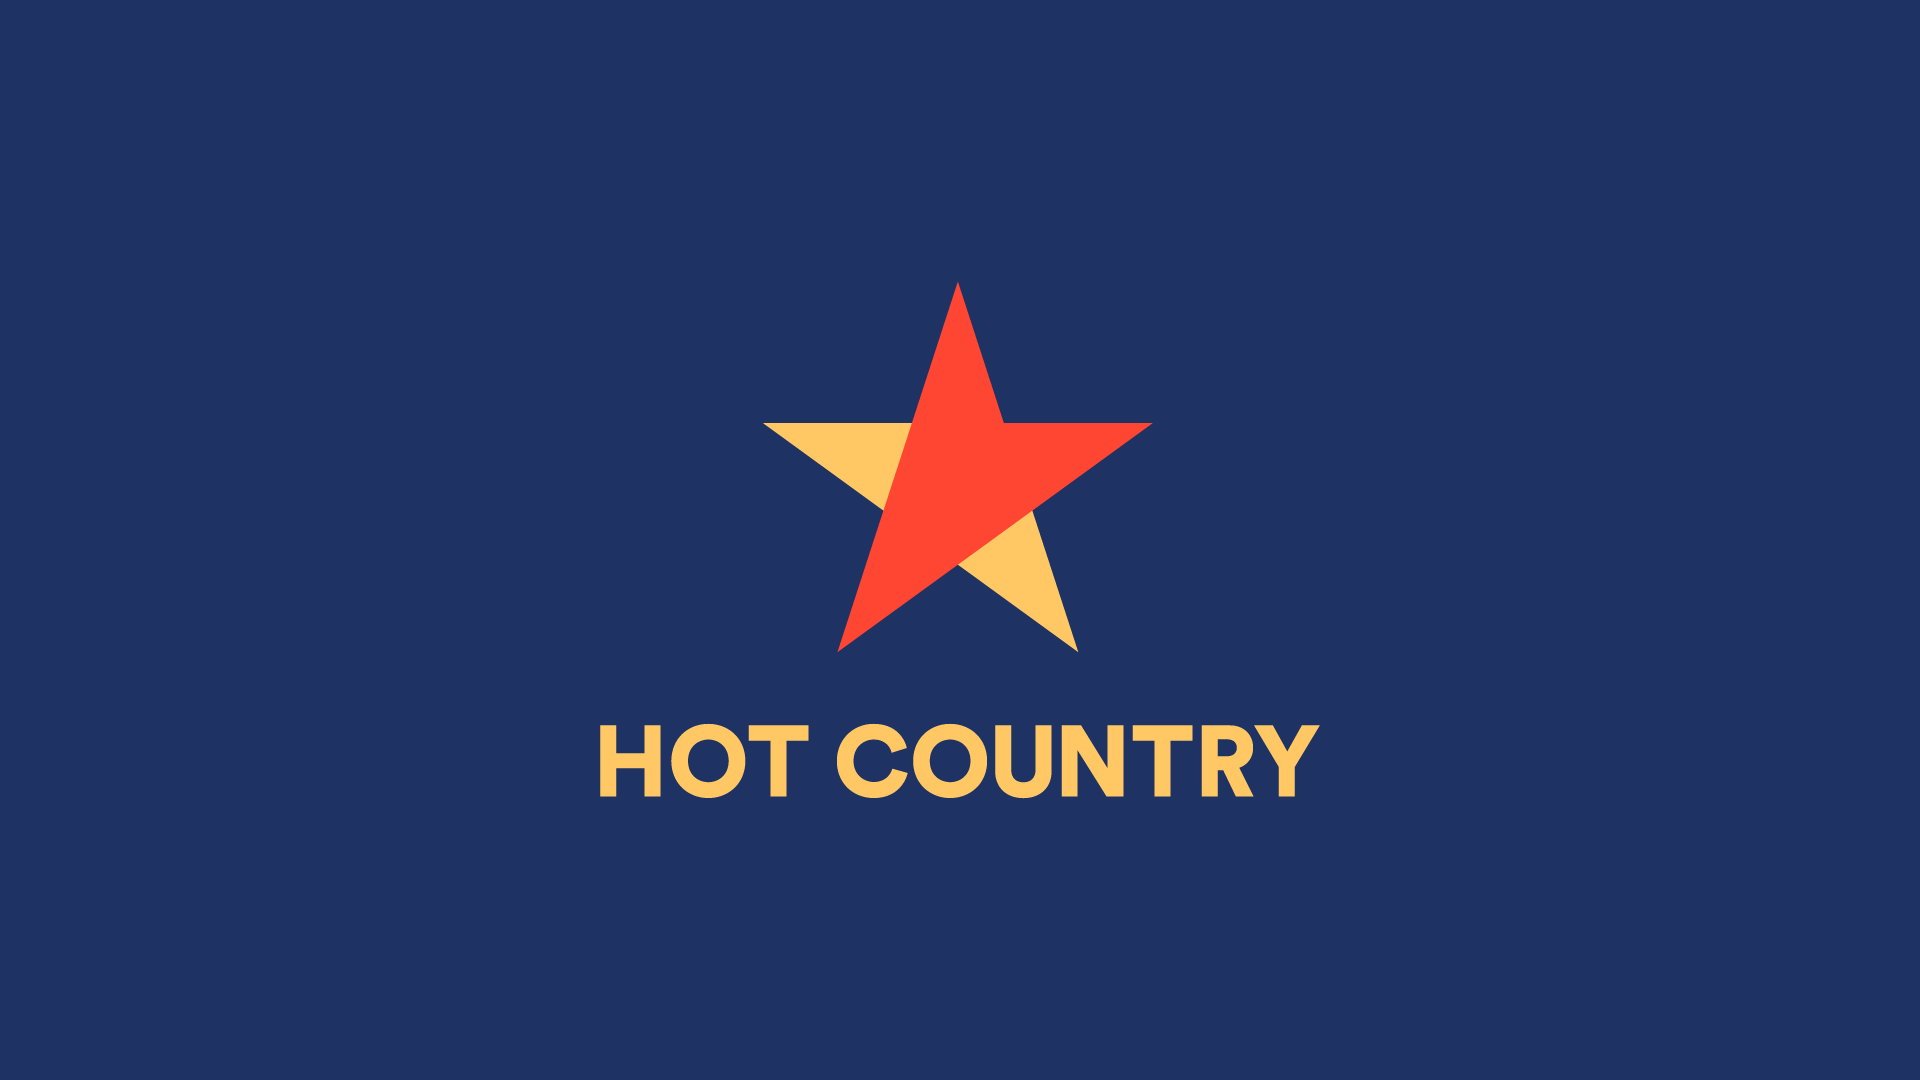 Spotify's Hot Country Playlist